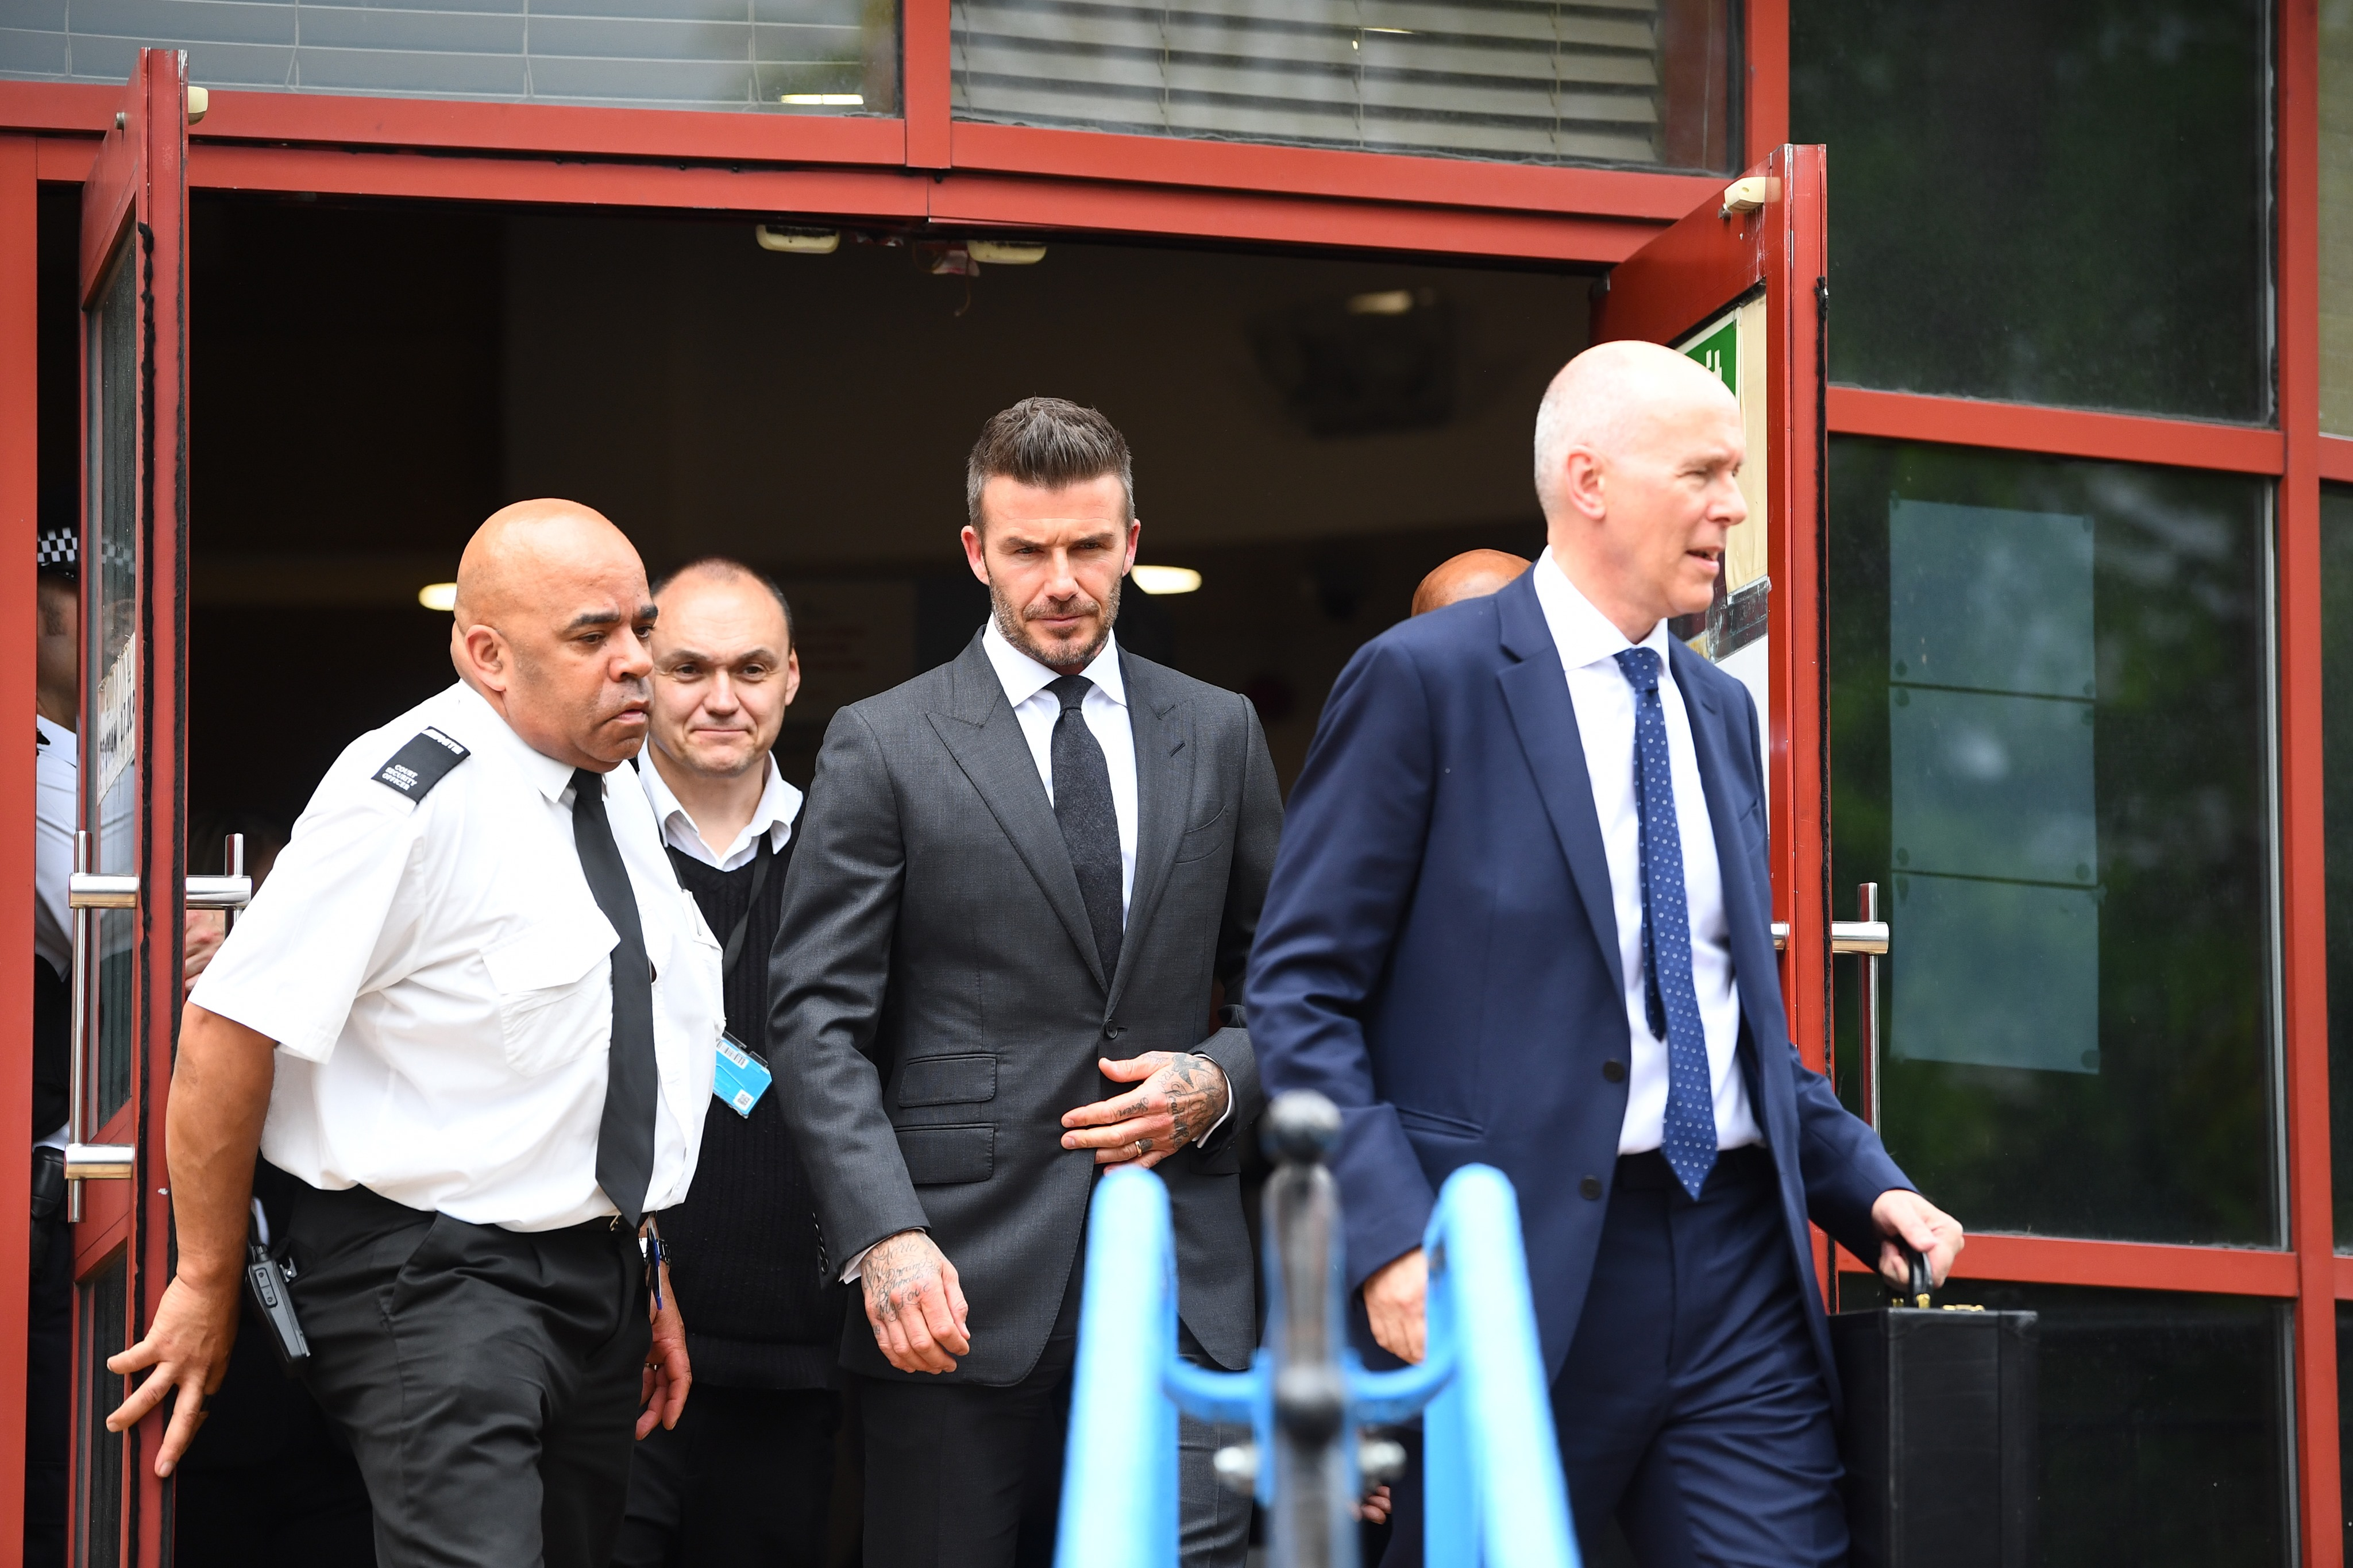 Beckham leaving court. Credit: PA